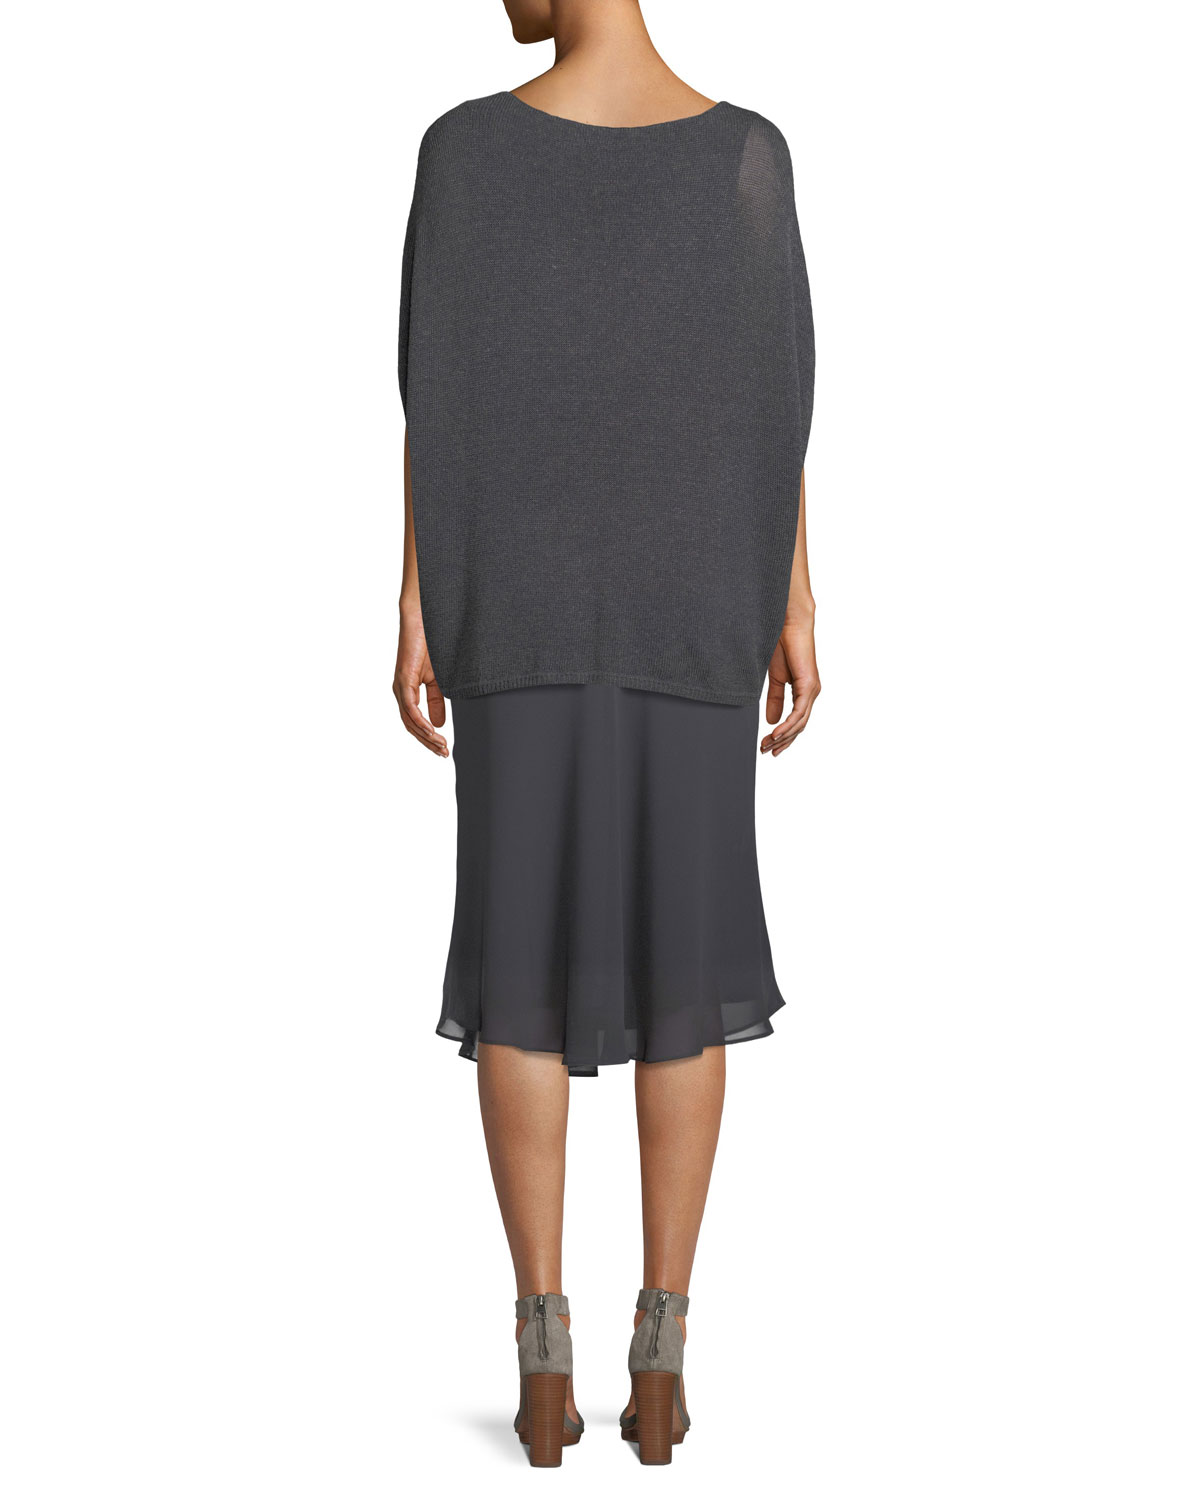 Paired Up Twirl Pull-On Skirt, Plus Size